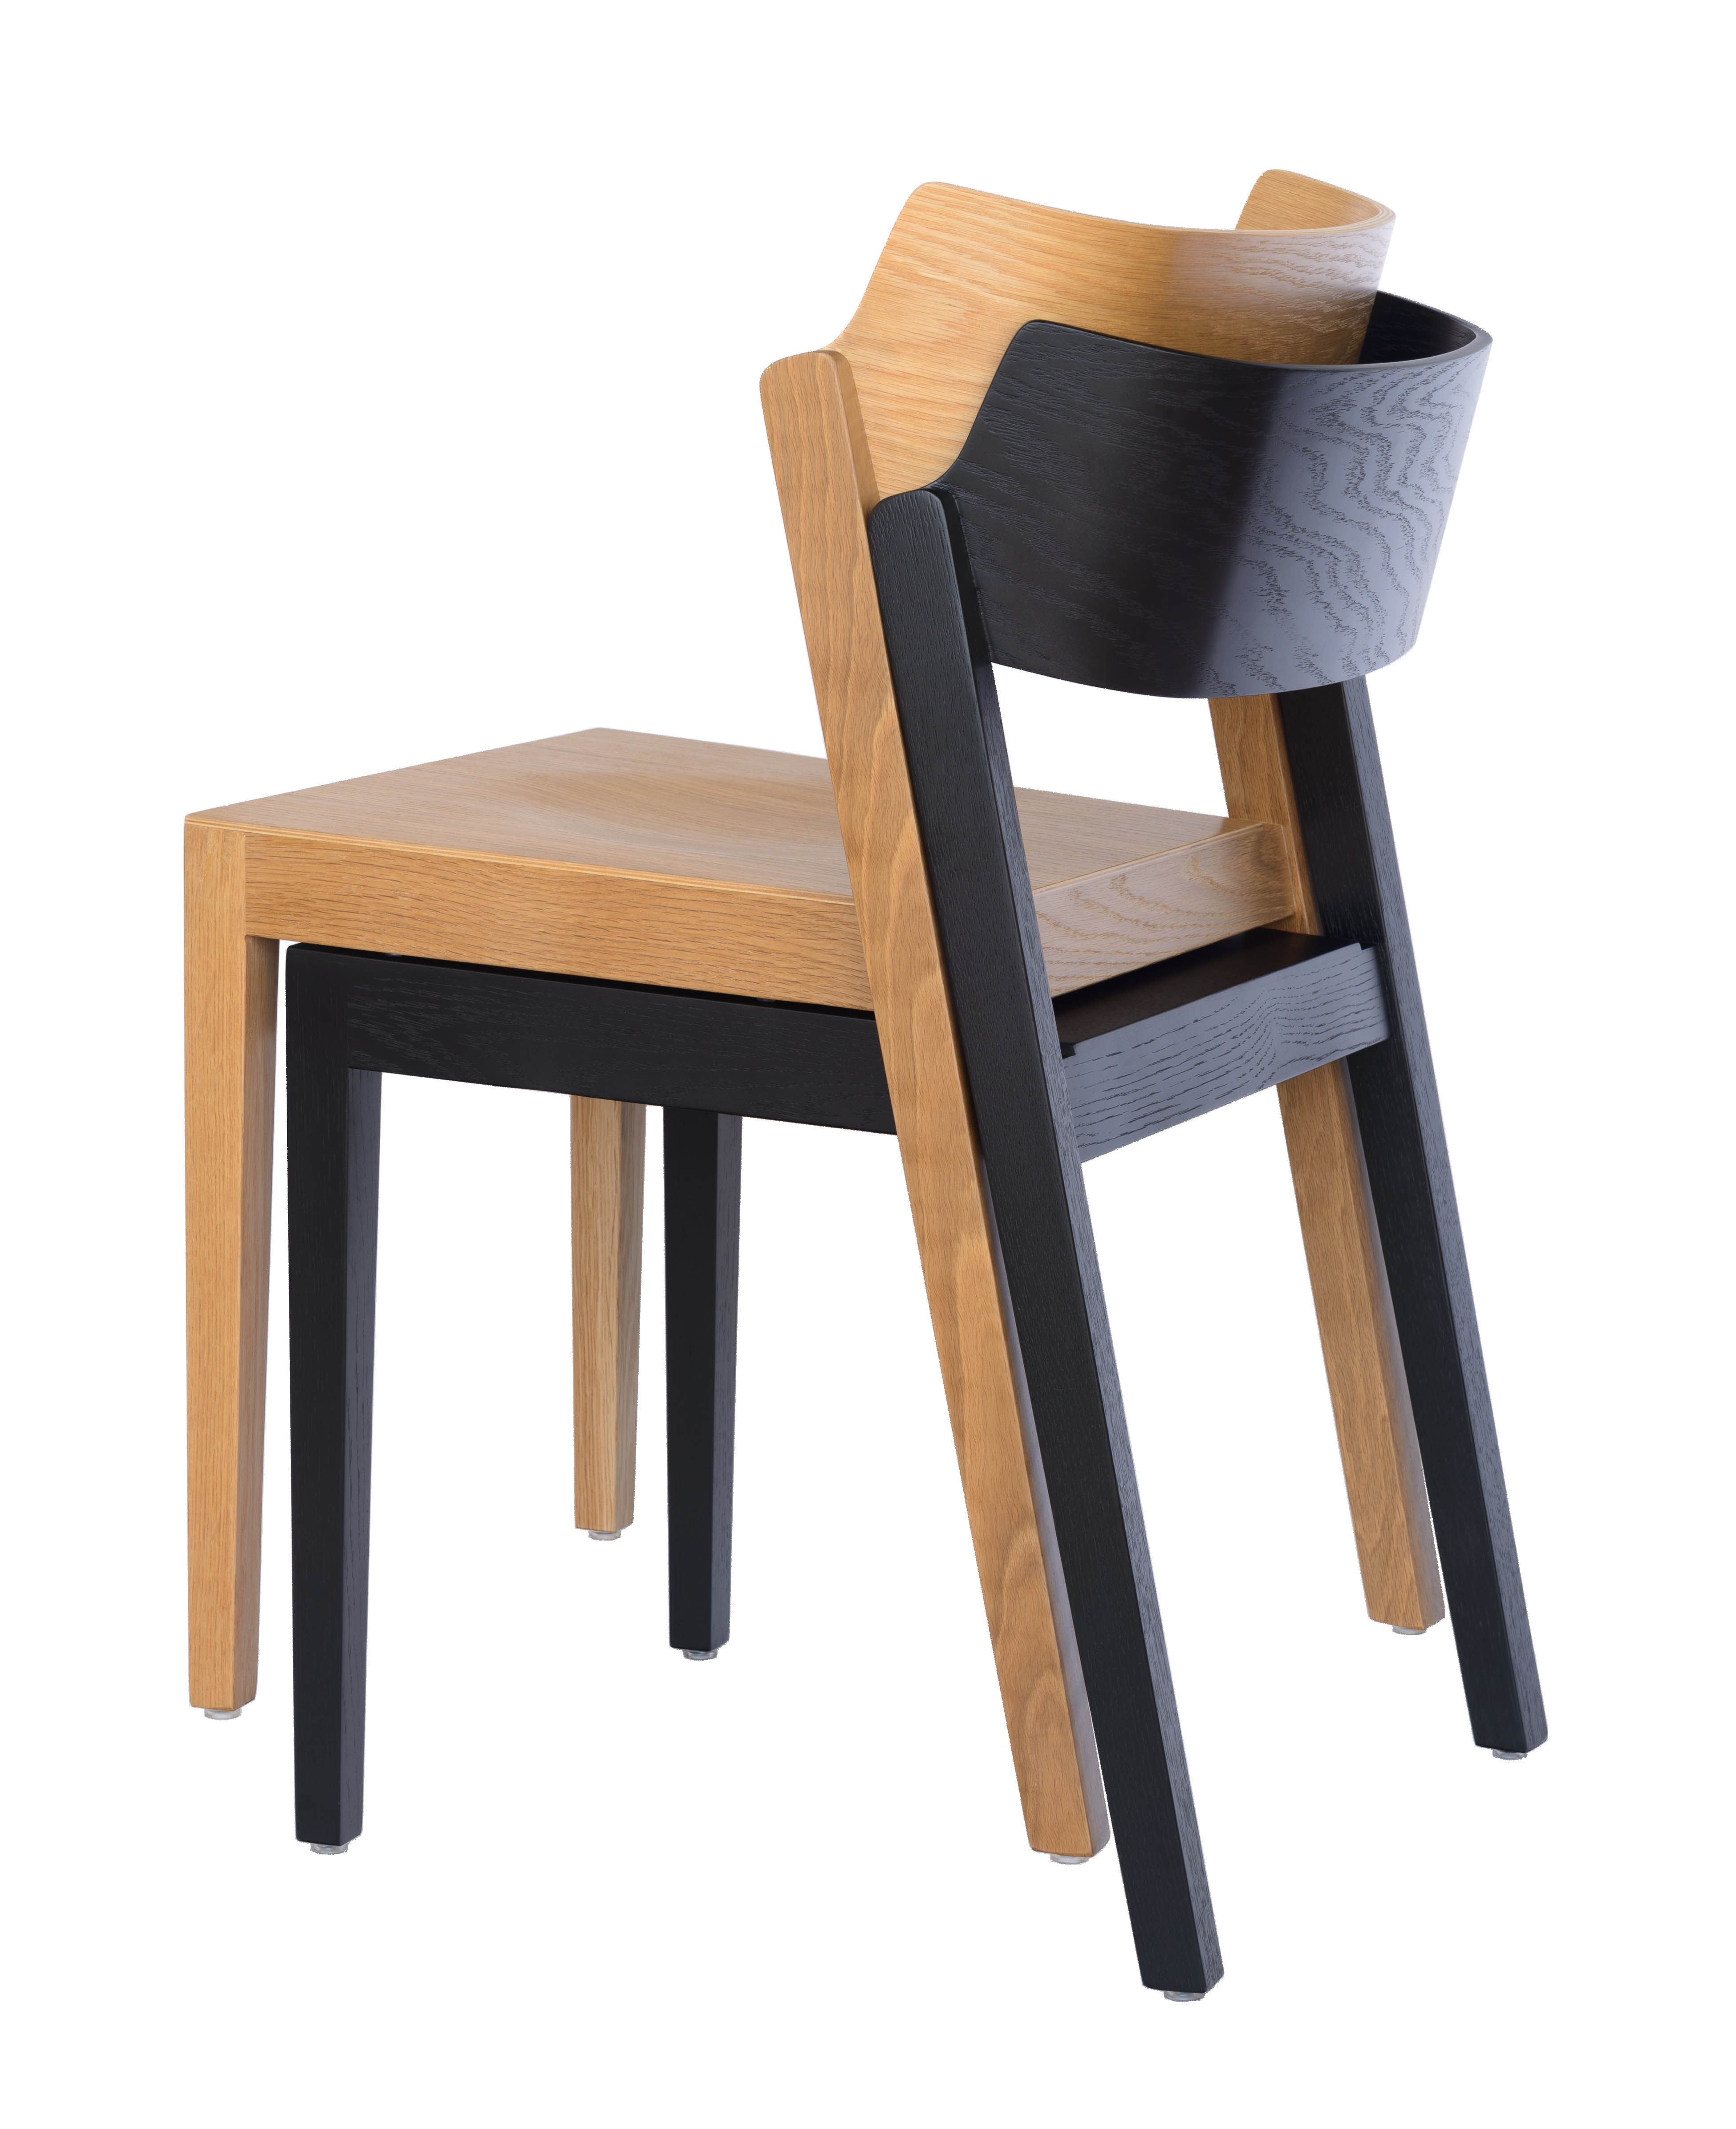 The 100 Chair, stacked